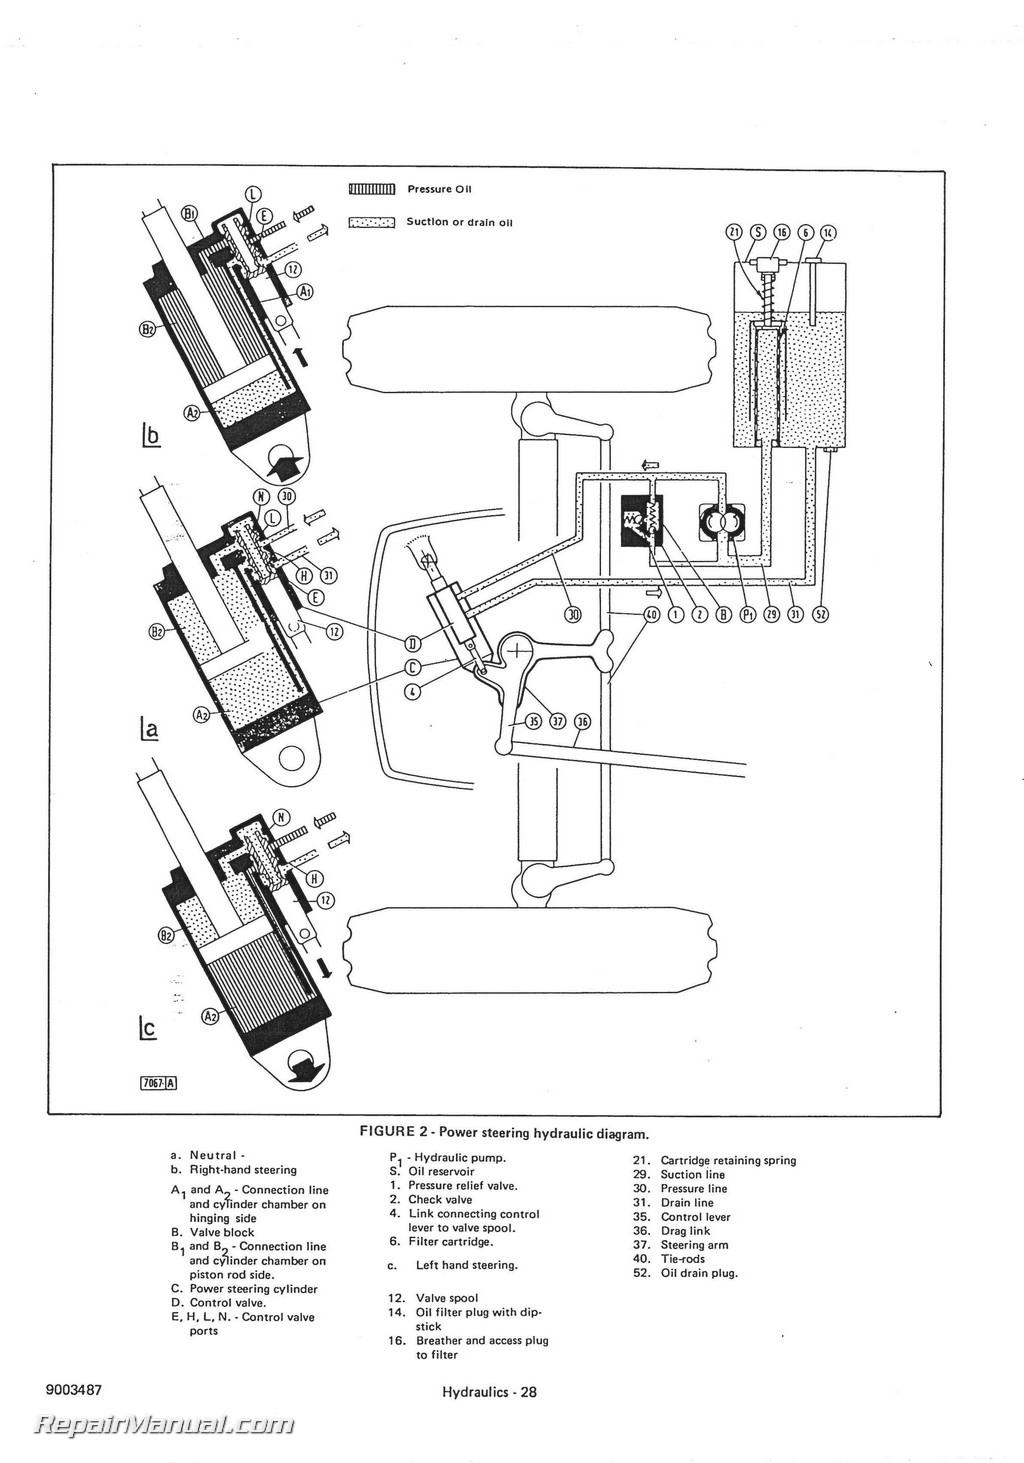 Ford Tractor Loader Parts Diagram Auto Wiring. Ford. Auto